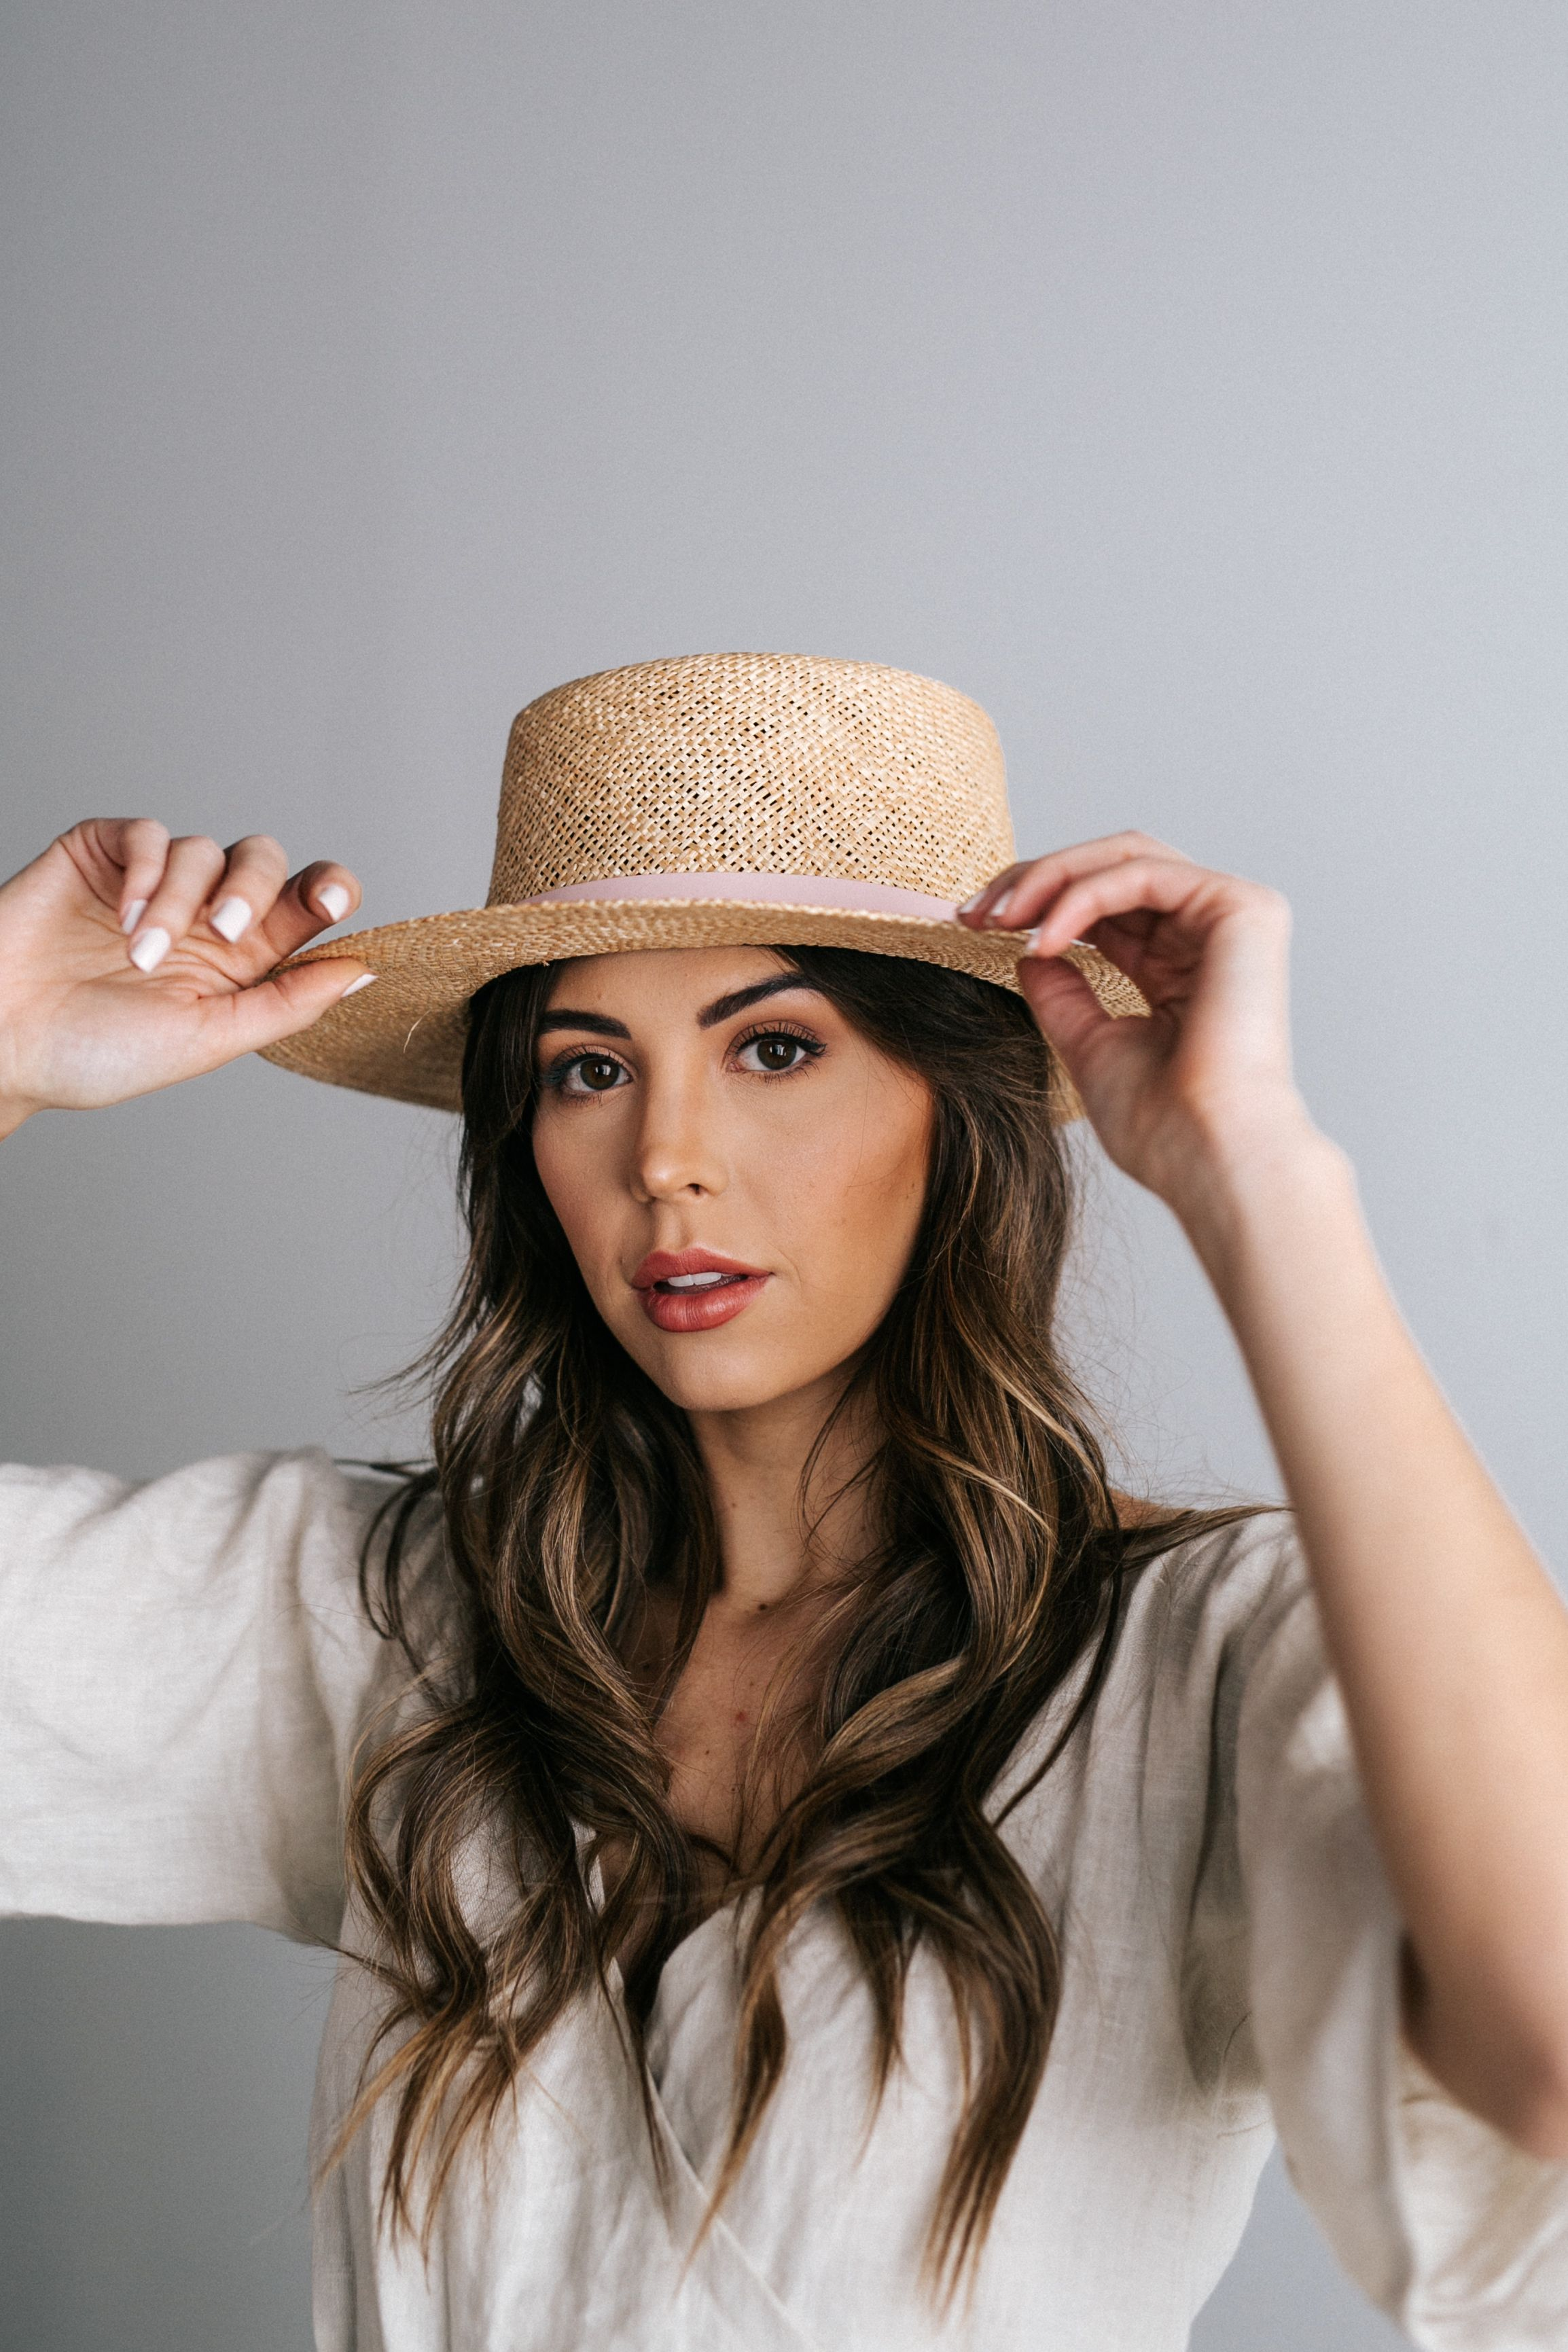 4a6f6046a10 Our straw hat collection consists of a wide range of women s hat styles  including floppy sun